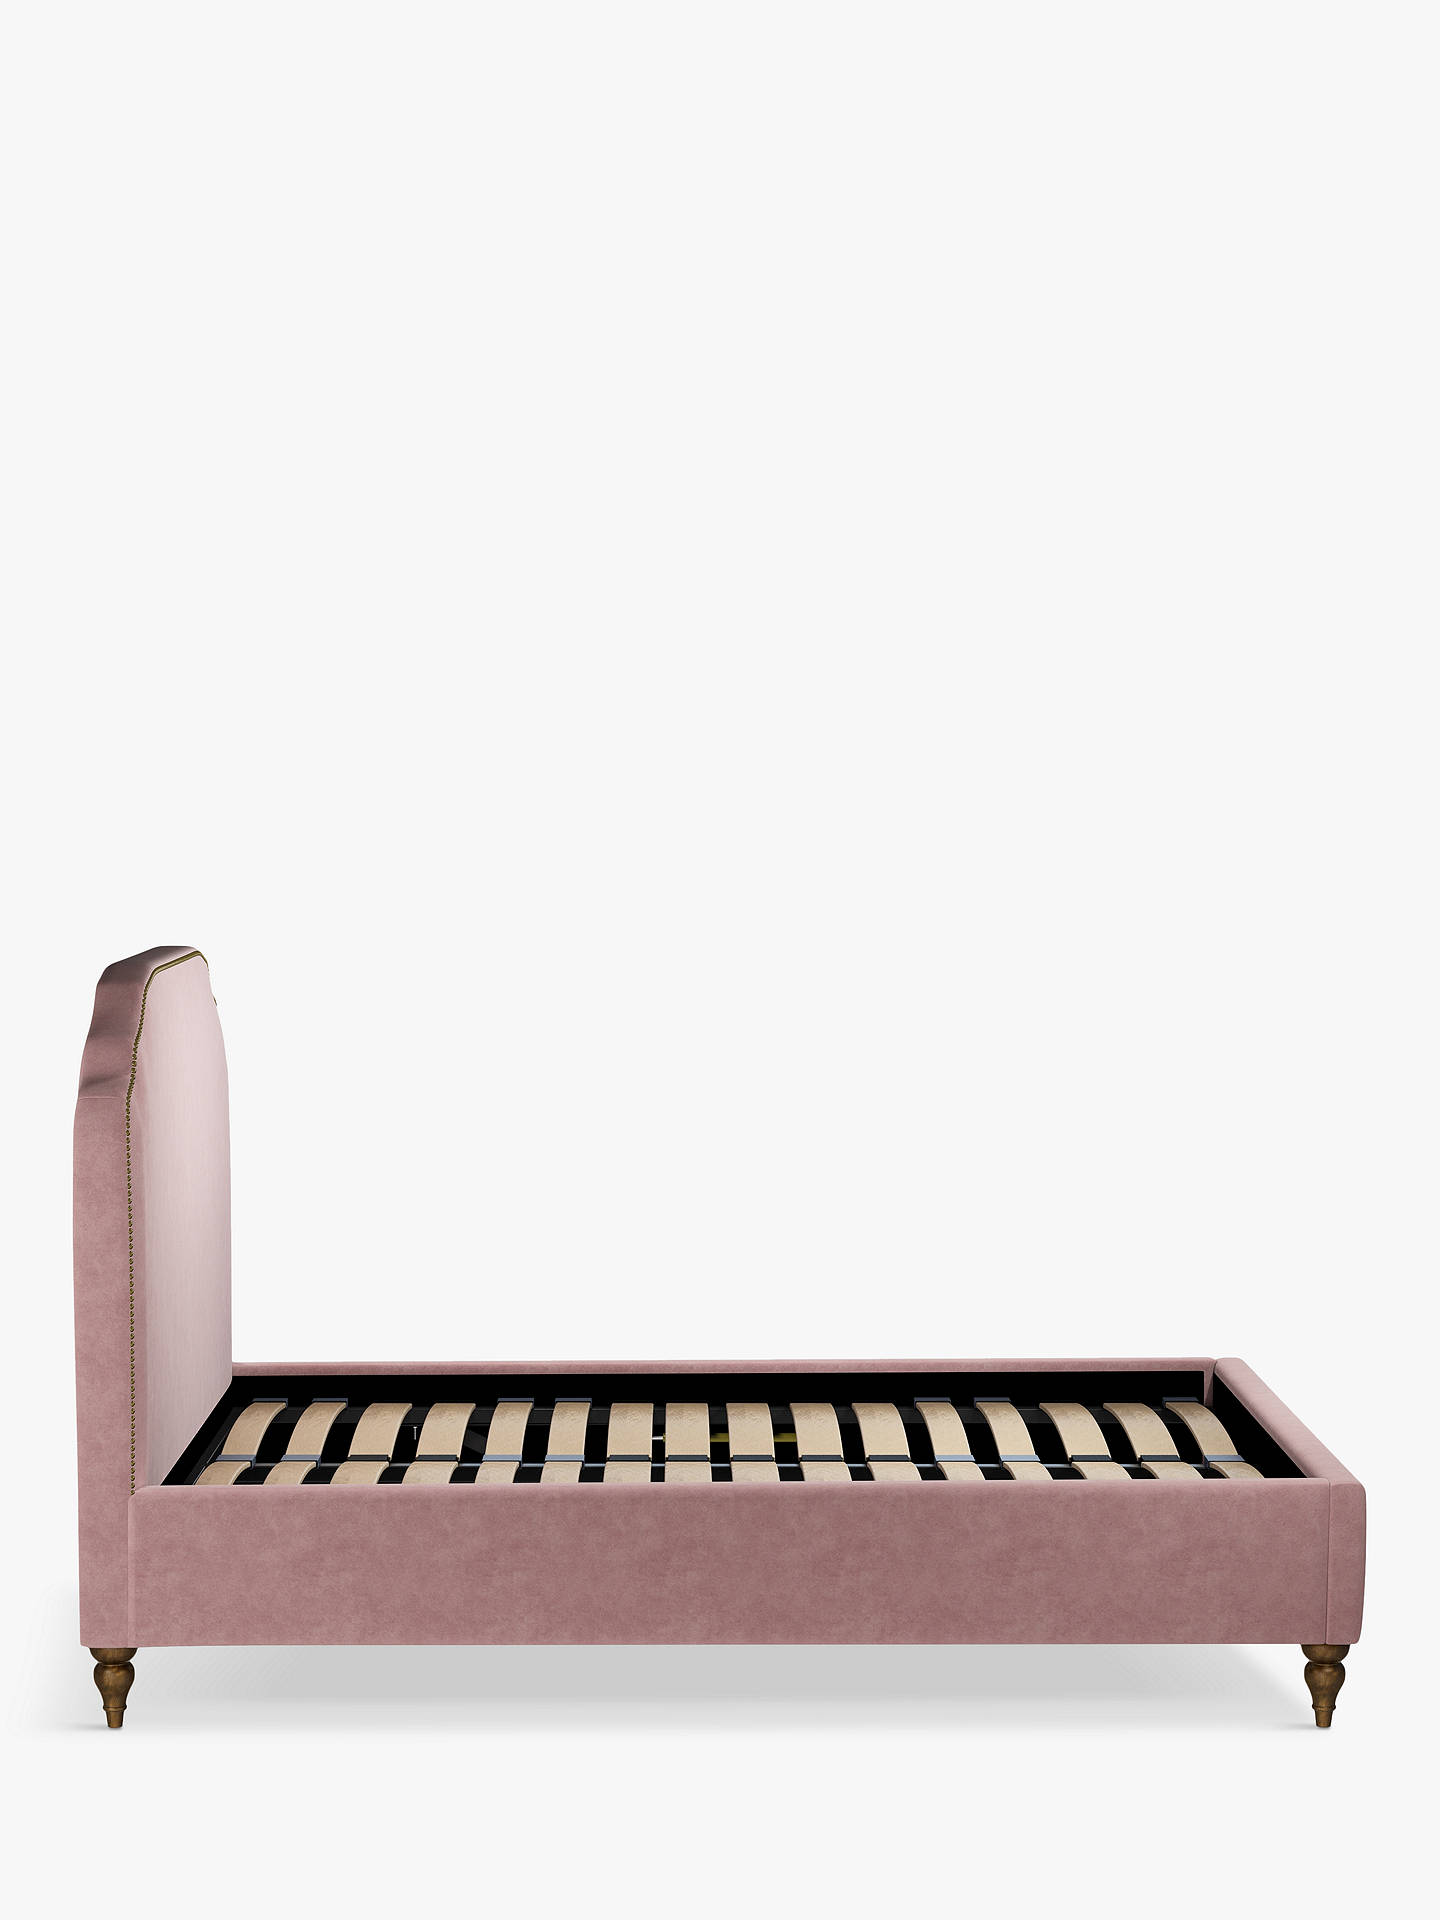 Buy John Lewis & Partners Studded Upholstered Bed Frame, Double, Aquaclean Harriet Rose Online at johnlewis.com